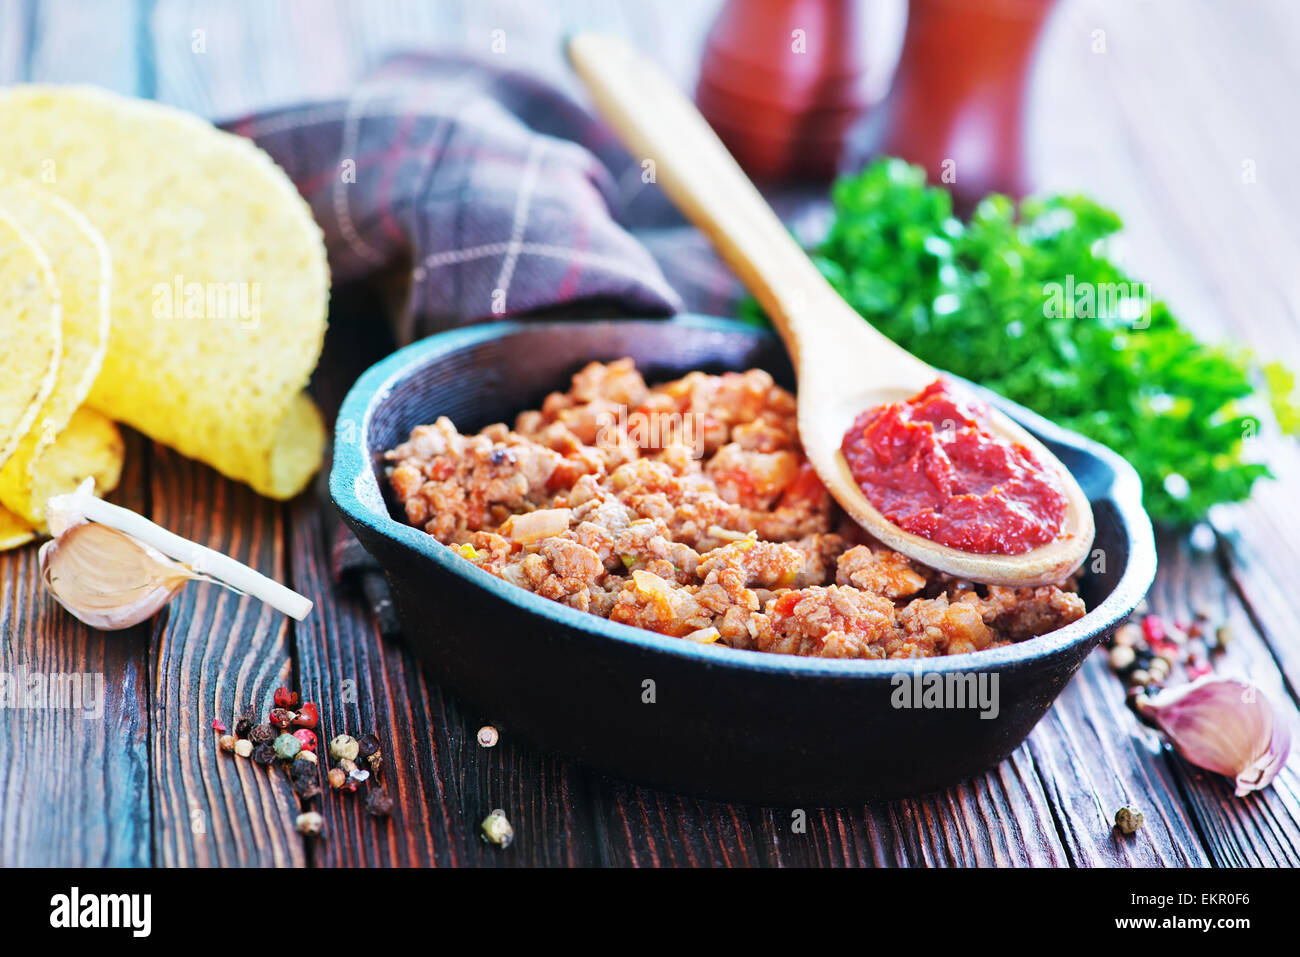 a bowl of fried ground meat with tomatoes ready for tacos Stock Photo